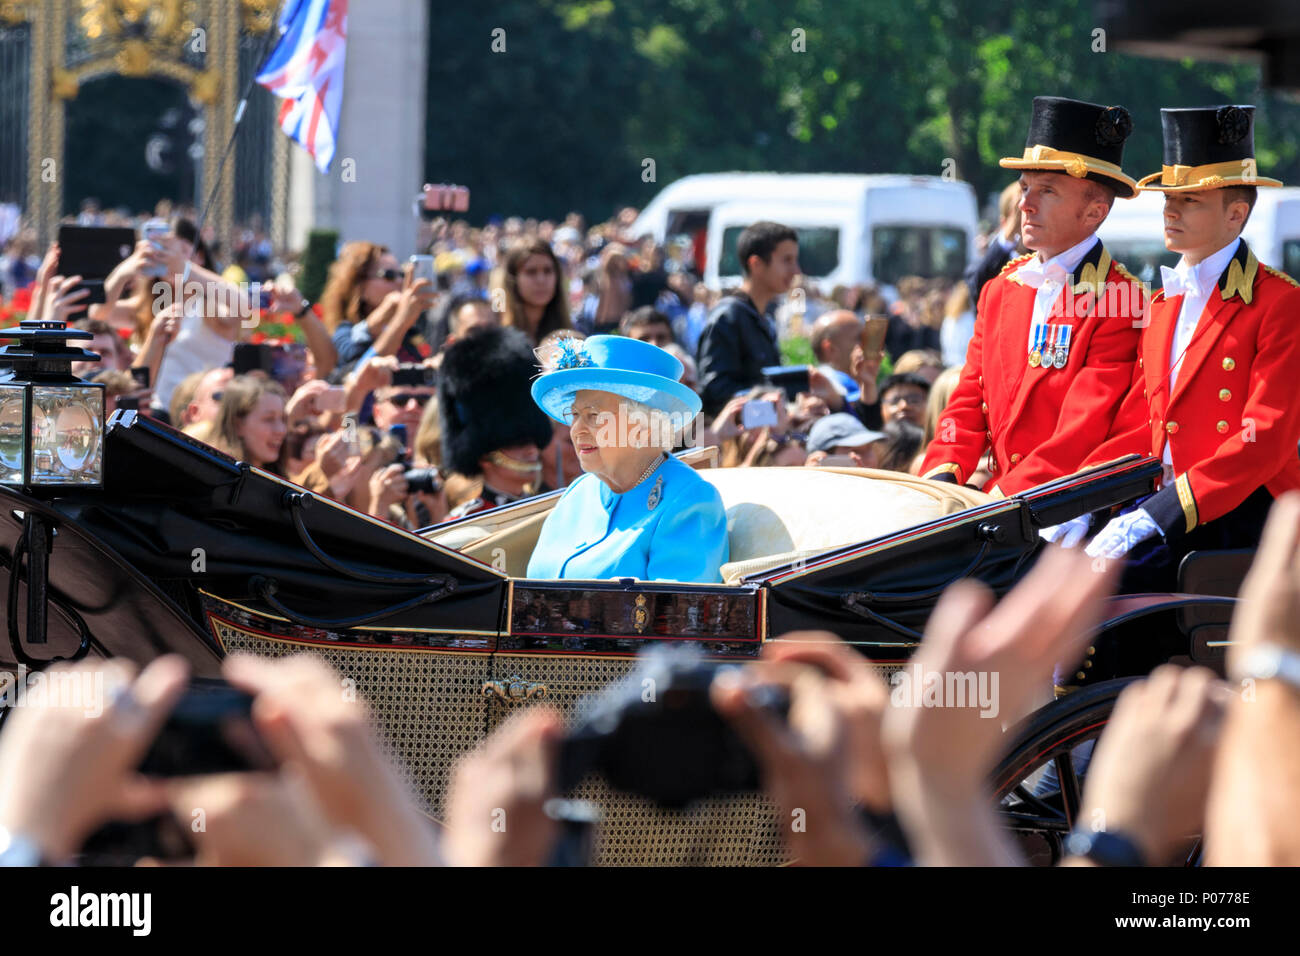 The Mall, London, UK, 9th June 2018. Her Majesty the Queen. The Sovereign's birthday is officially celebrated by the ceremony of Trooping the Colour, the Queen's Birthday Parade. Troops from the  Household Division, overall 1400 officers and soldiers are on parade, together with two hundred horses; over four hundred musicians from ten bands and corps of drums. The parade route extends from Buckingham Palace along The Mall to Horse Guards Parade, Whitehall and back again. Stock Photo